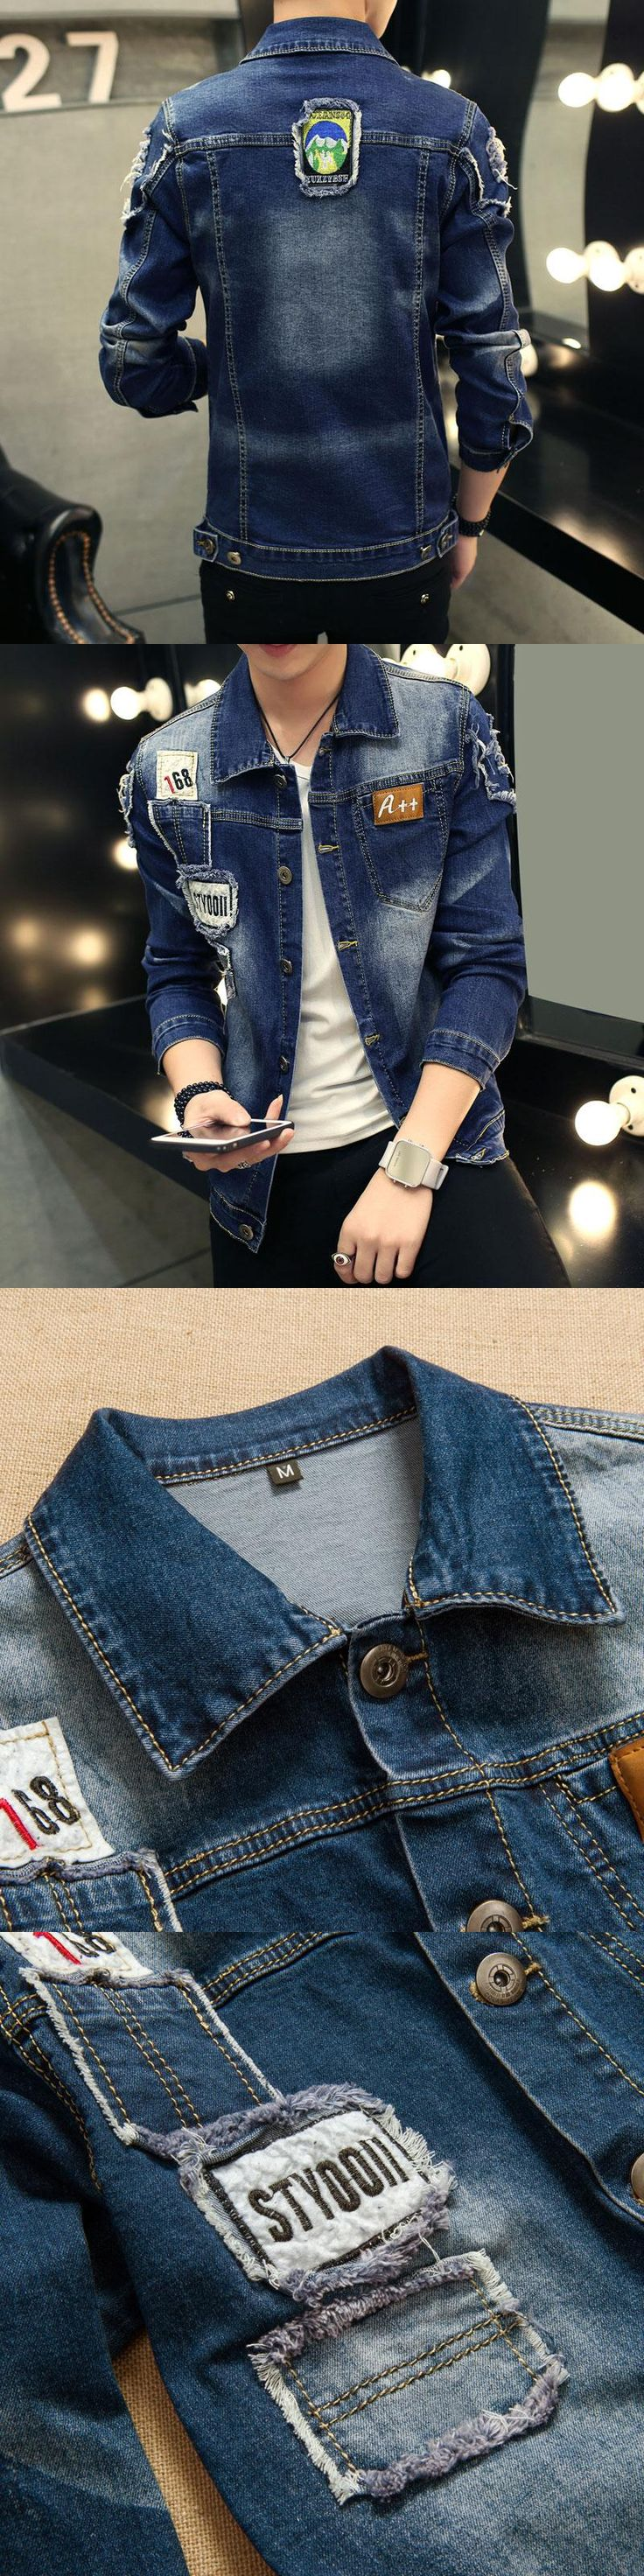 2017 spring new Top Quality Denim Jackets Men Hip Hop Clothing long sleeve Street wear Jeans Jackets Free shipping